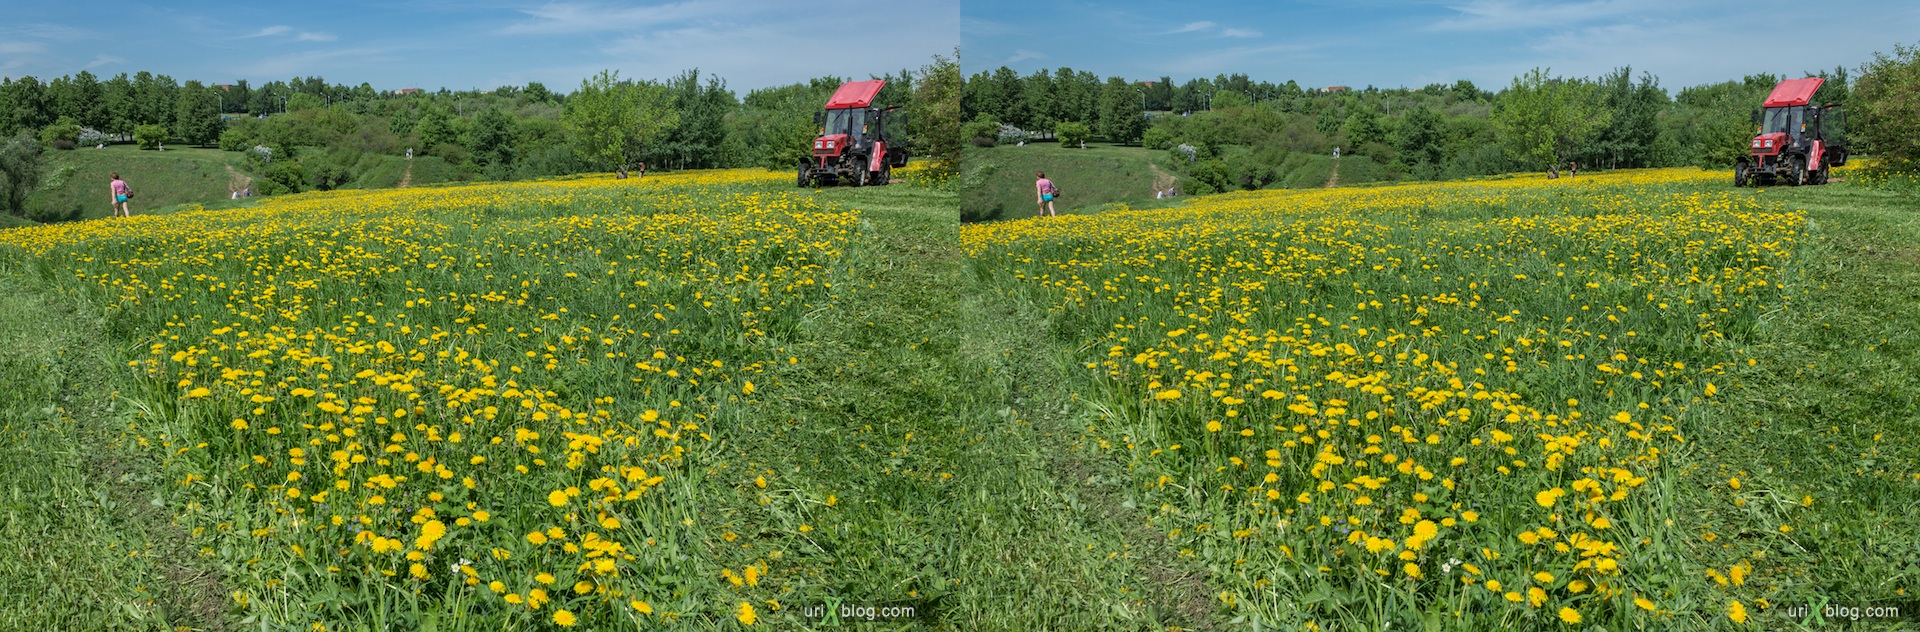 2013, dandelion, lawn mower, flower, grass, park, field, Moscow, Russia, spring, 3D, stereo pair, cross-eyed, crossview, cross view stereo pair, stereoscopic